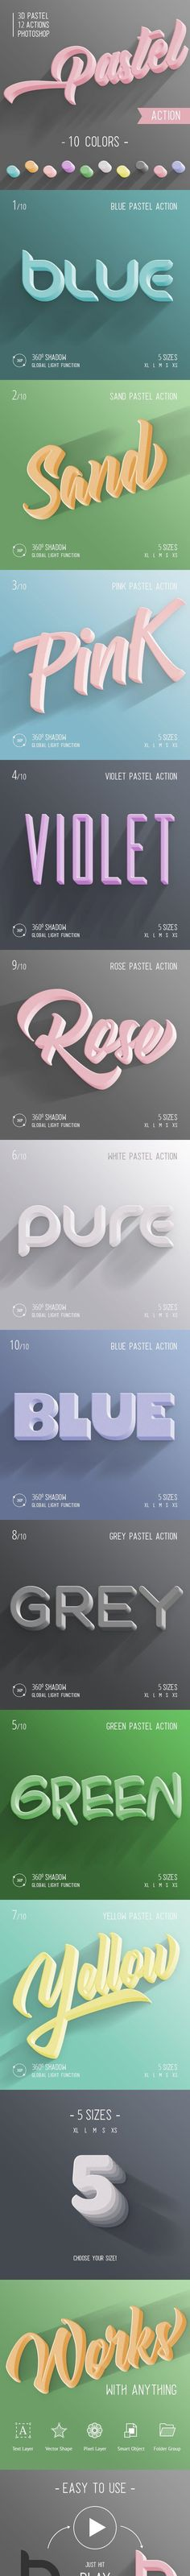 Buy Pastel - Photoshop Action by on GraphicRiver. One click action Photoshop ver. Photoshop Text Effects, Cool Photoshop, Best Photoshop Actions, Photoshop Design, Photoshop Tips, Photoshop Tutorial, Photoshop For Photographers, Photoshop Photography, Adobe Illustrator Tutorials